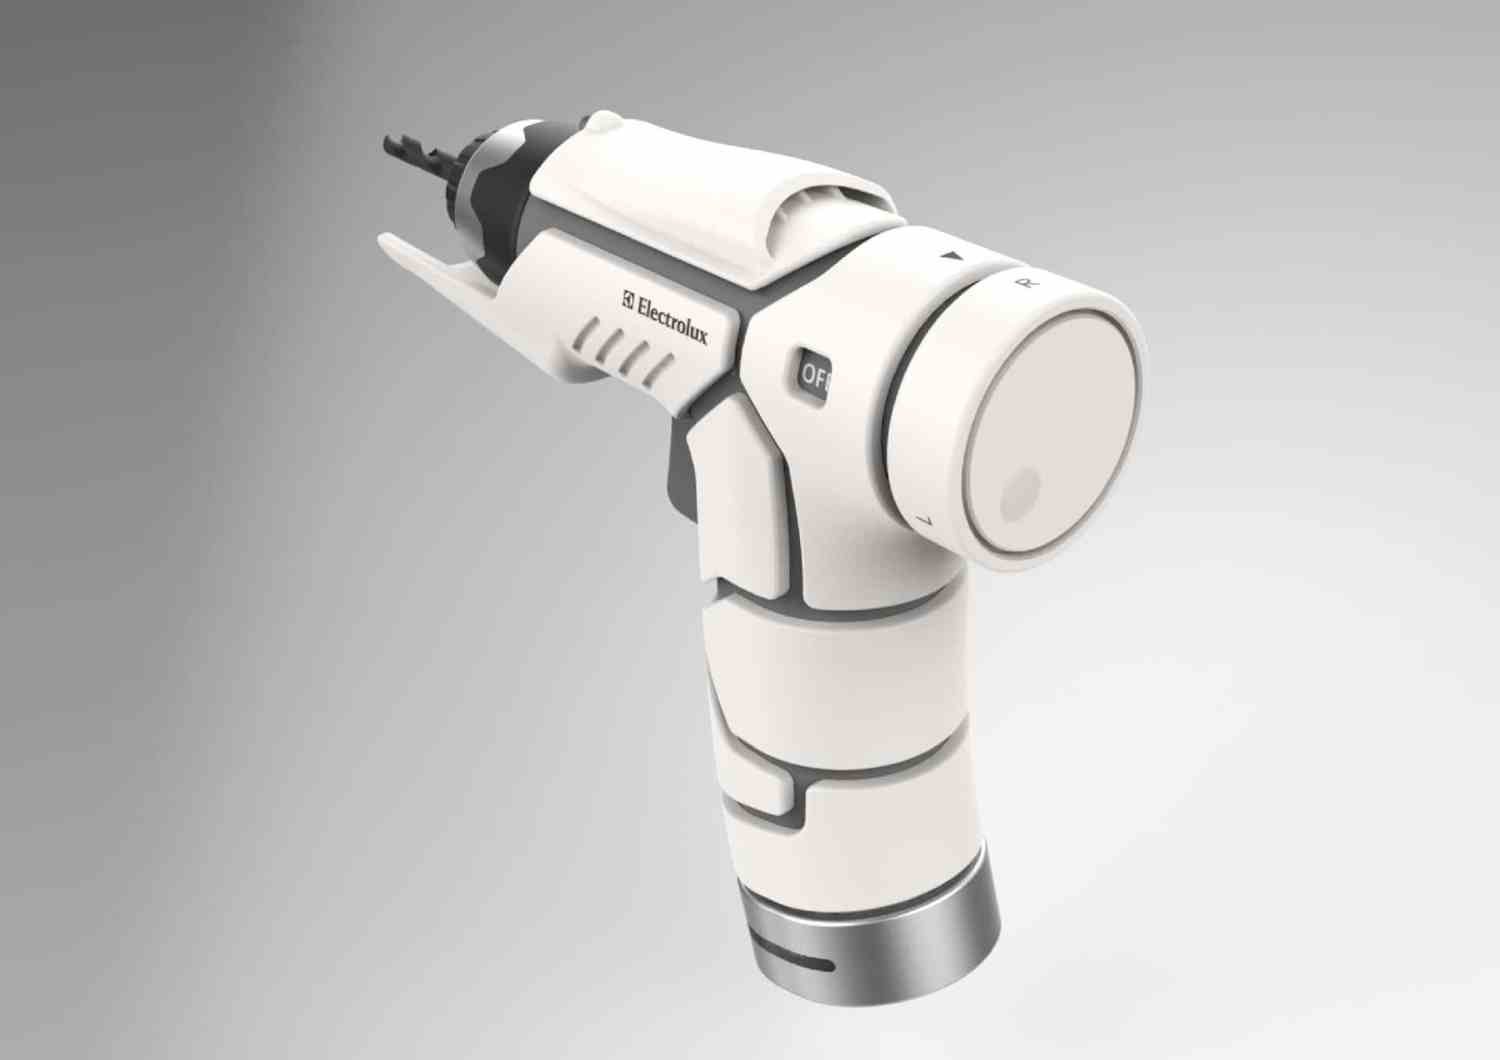 Electrolux Drill